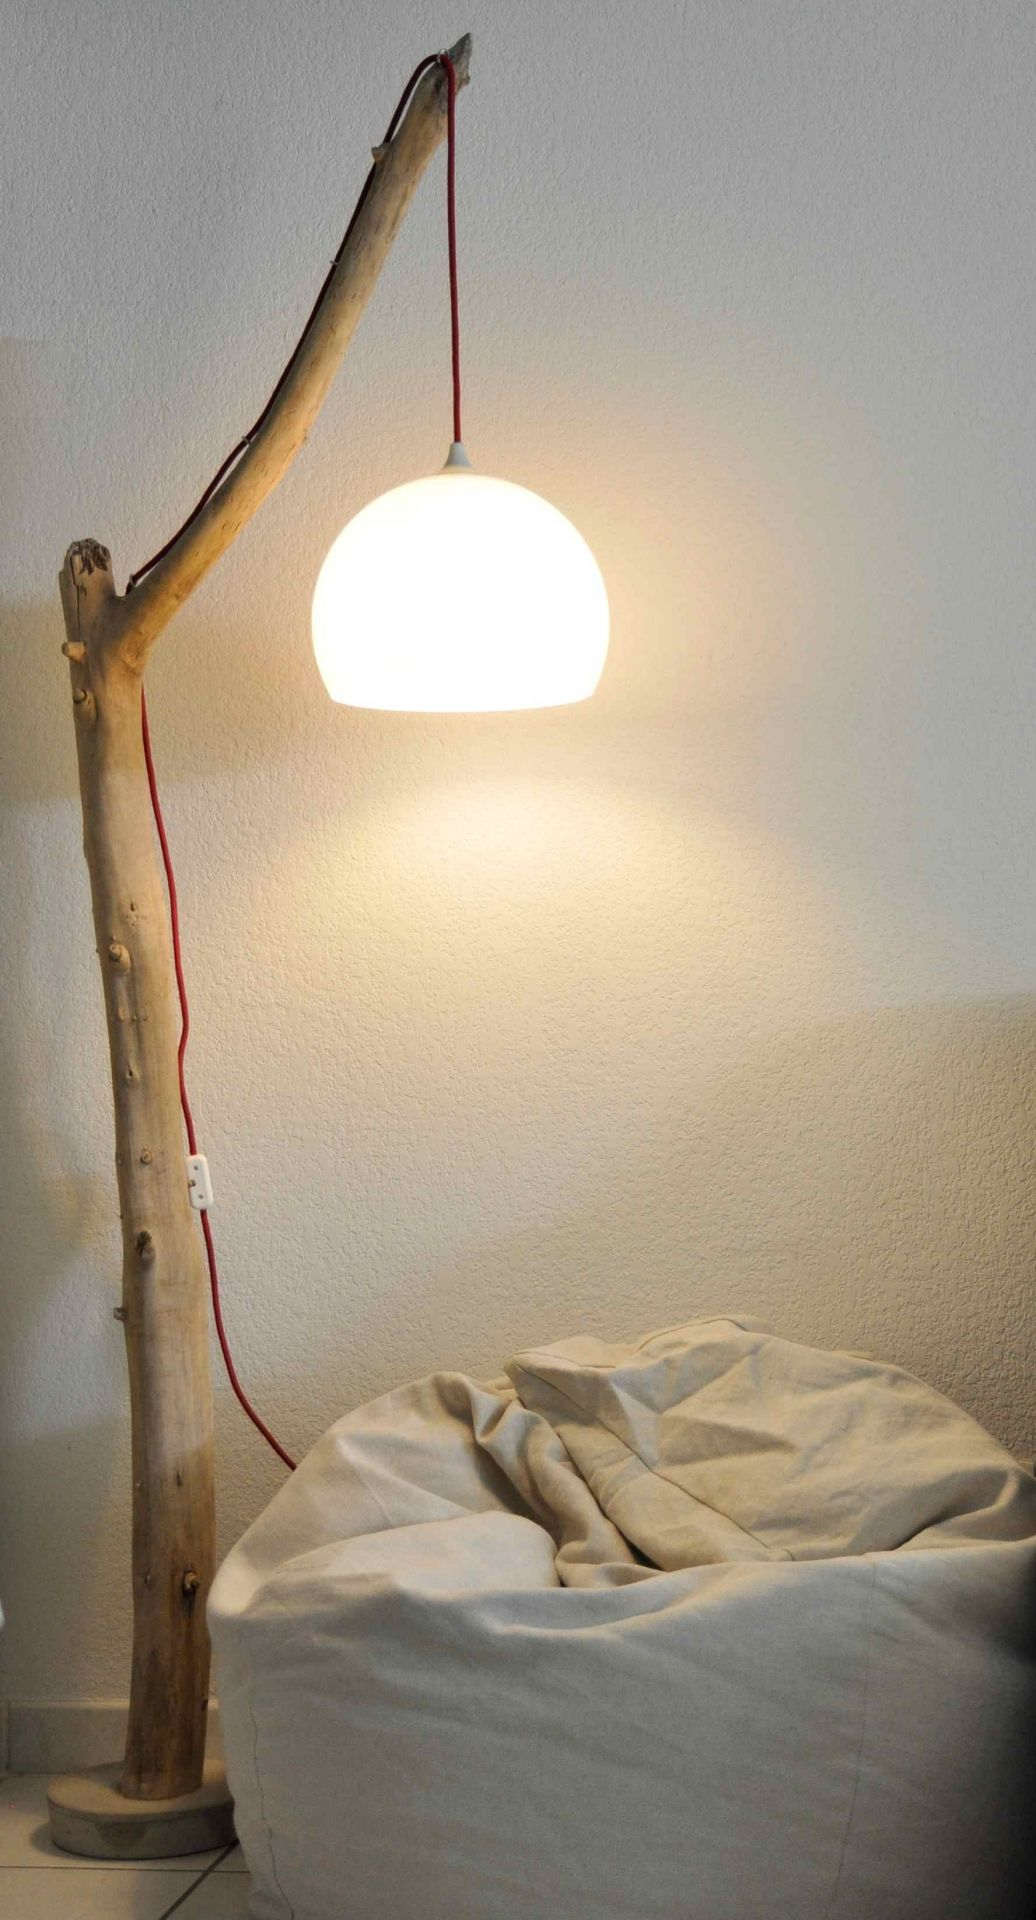 Tree Branch Lamp Diy Home Decor Projects Decor Tree Lamp